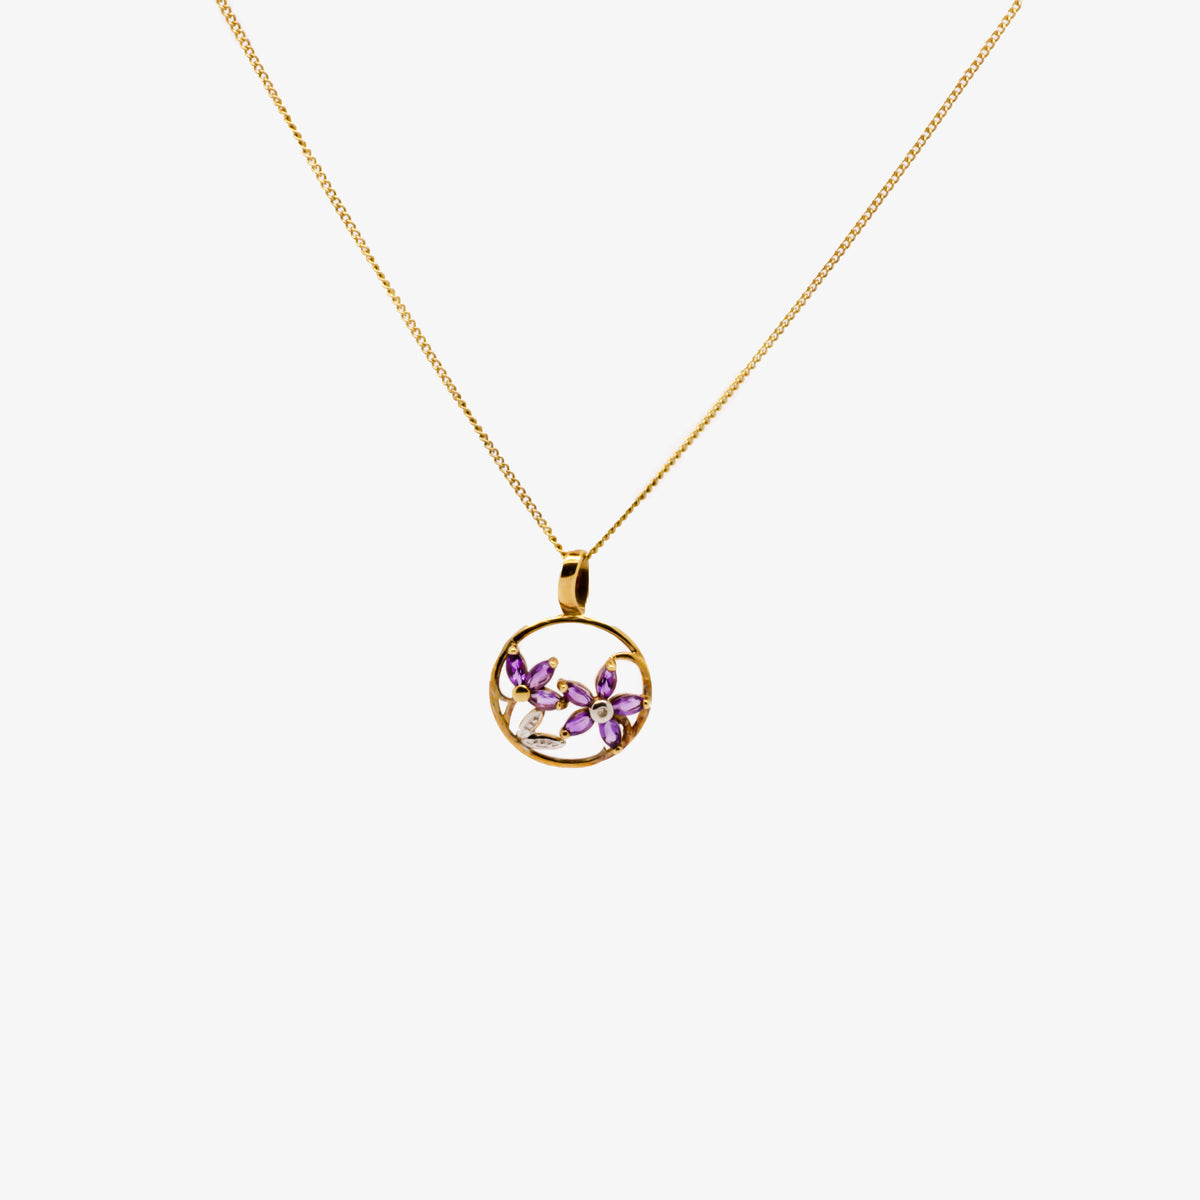 Amethyst Flower Pendant Necklace